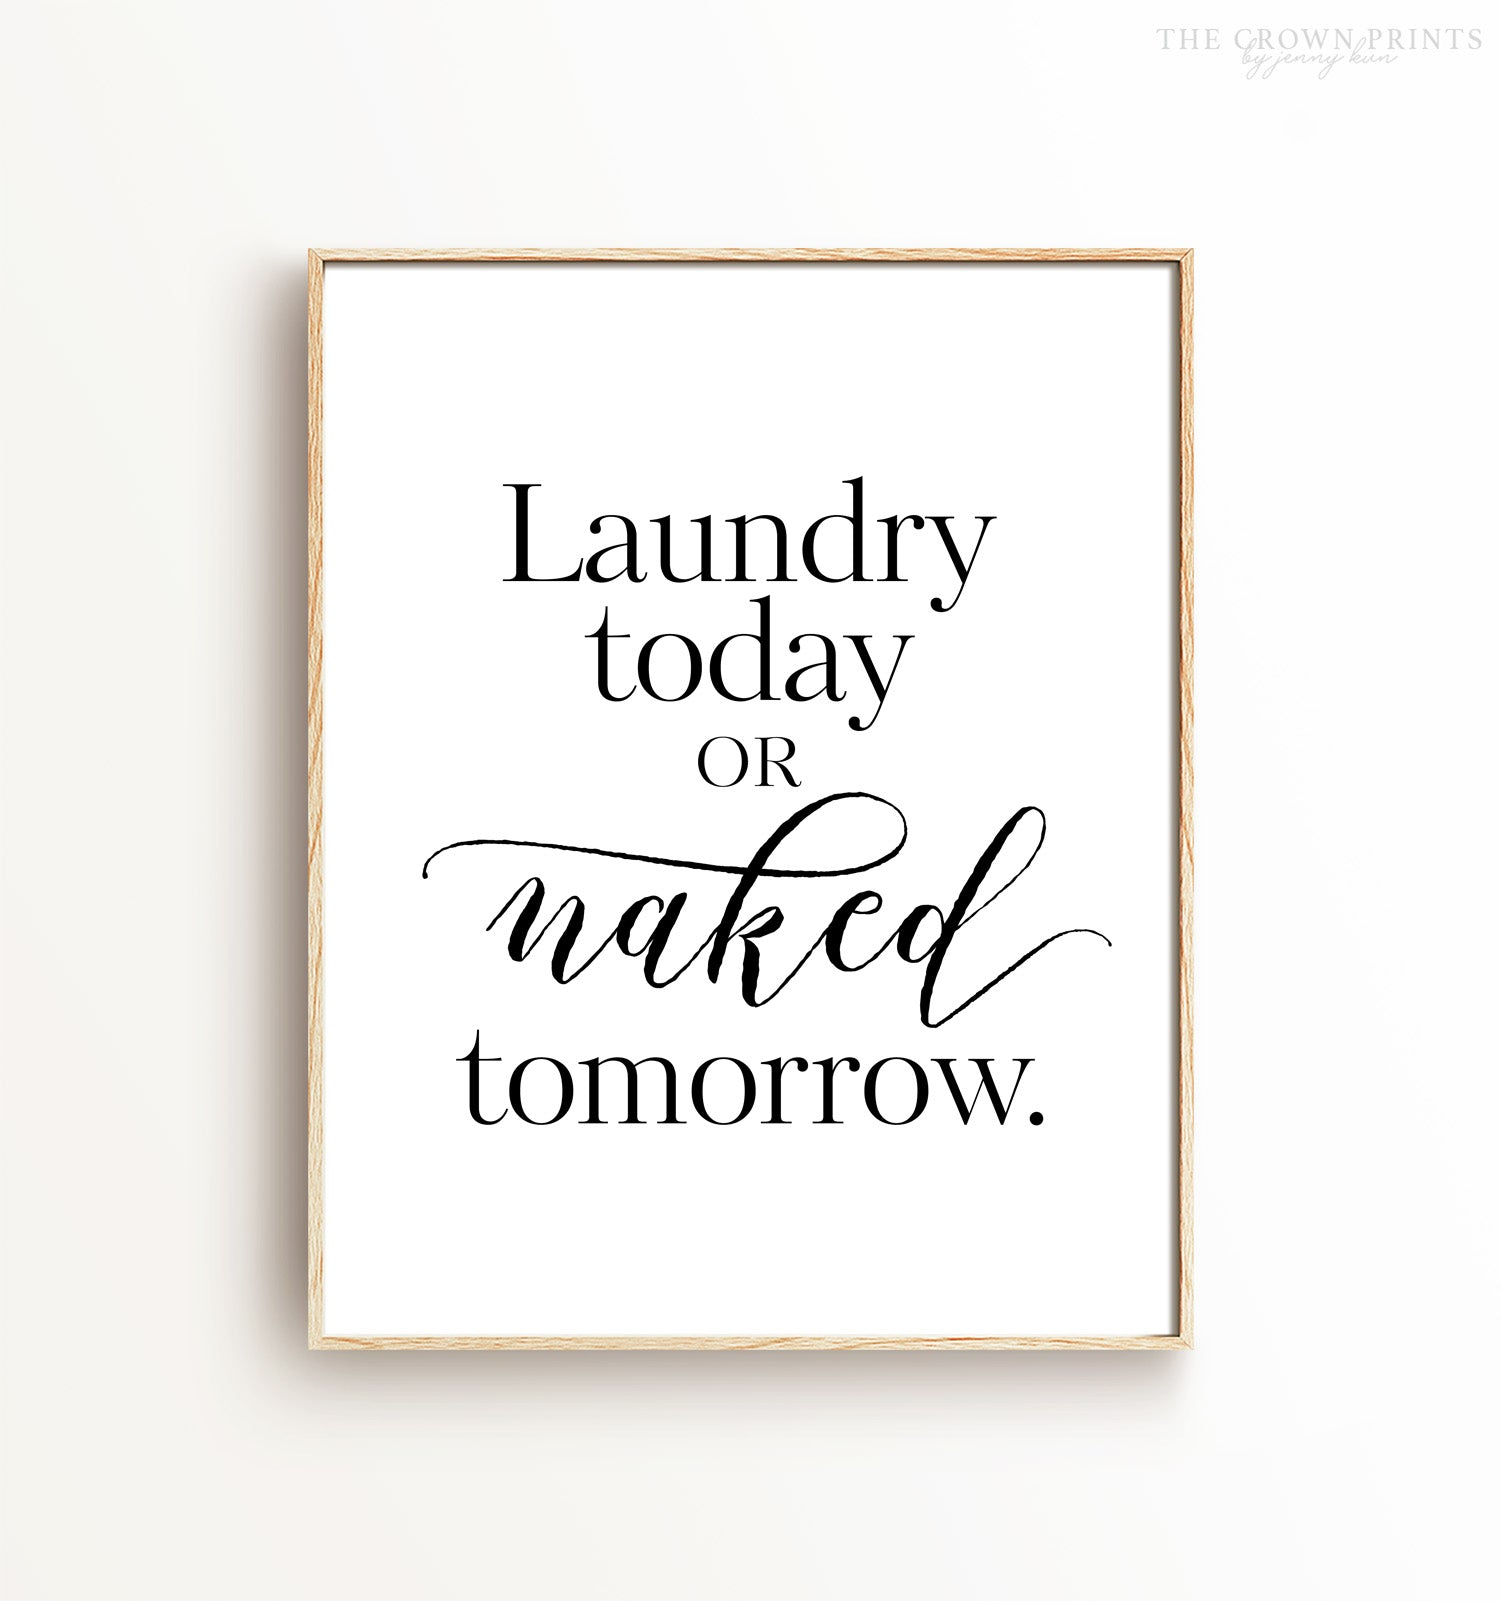 Laundry quote print home decor Laundry today or naked tomorrow print